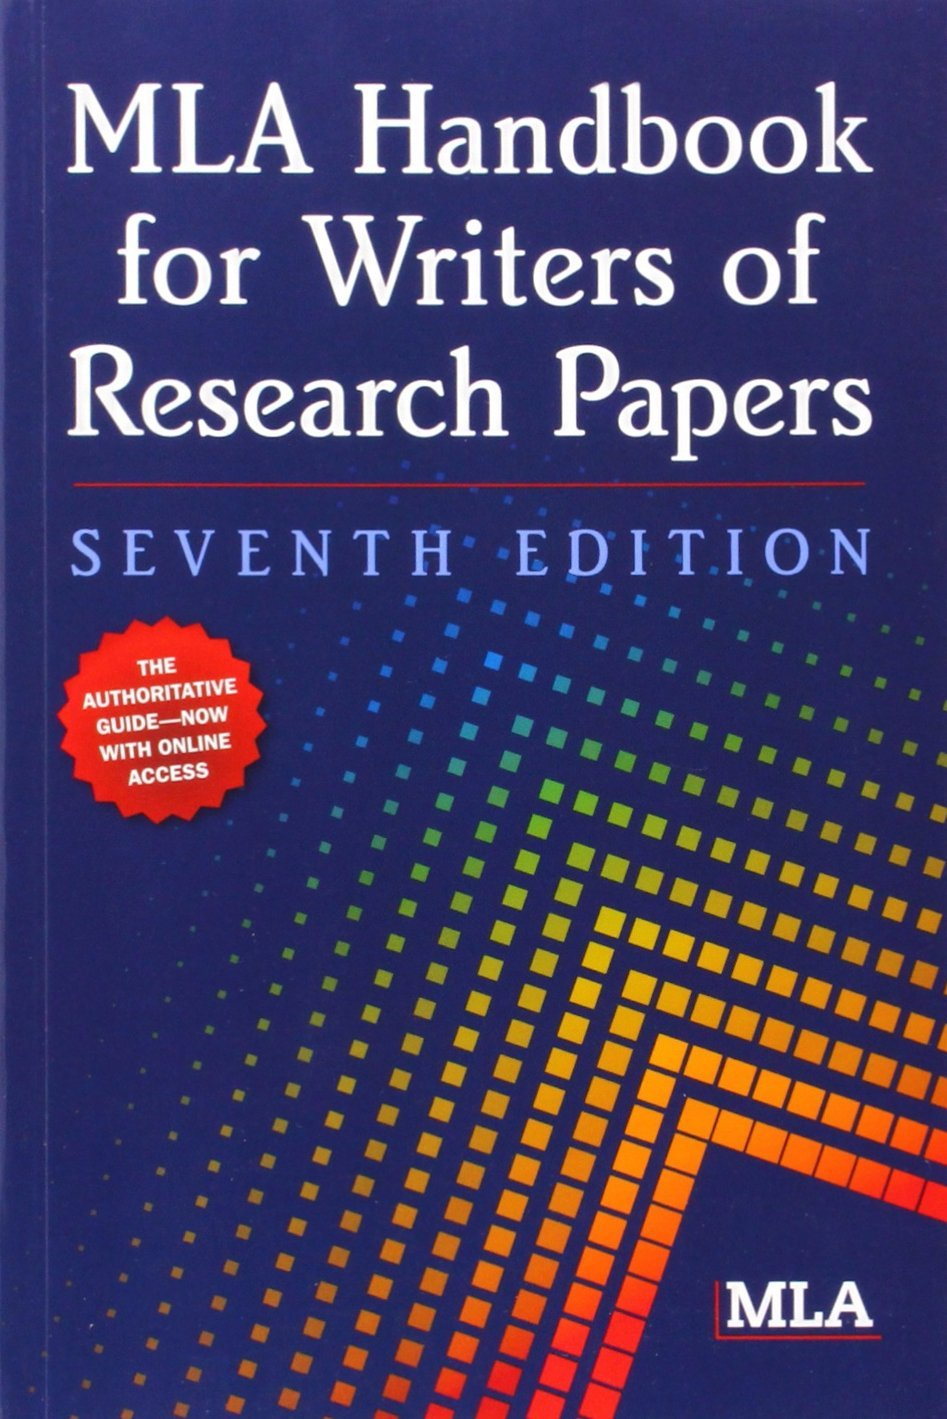 001 Mla Handbook For Writing Research Papers Paper Frightening Writers Of 8th Edition Pdf Free Download According To The Full